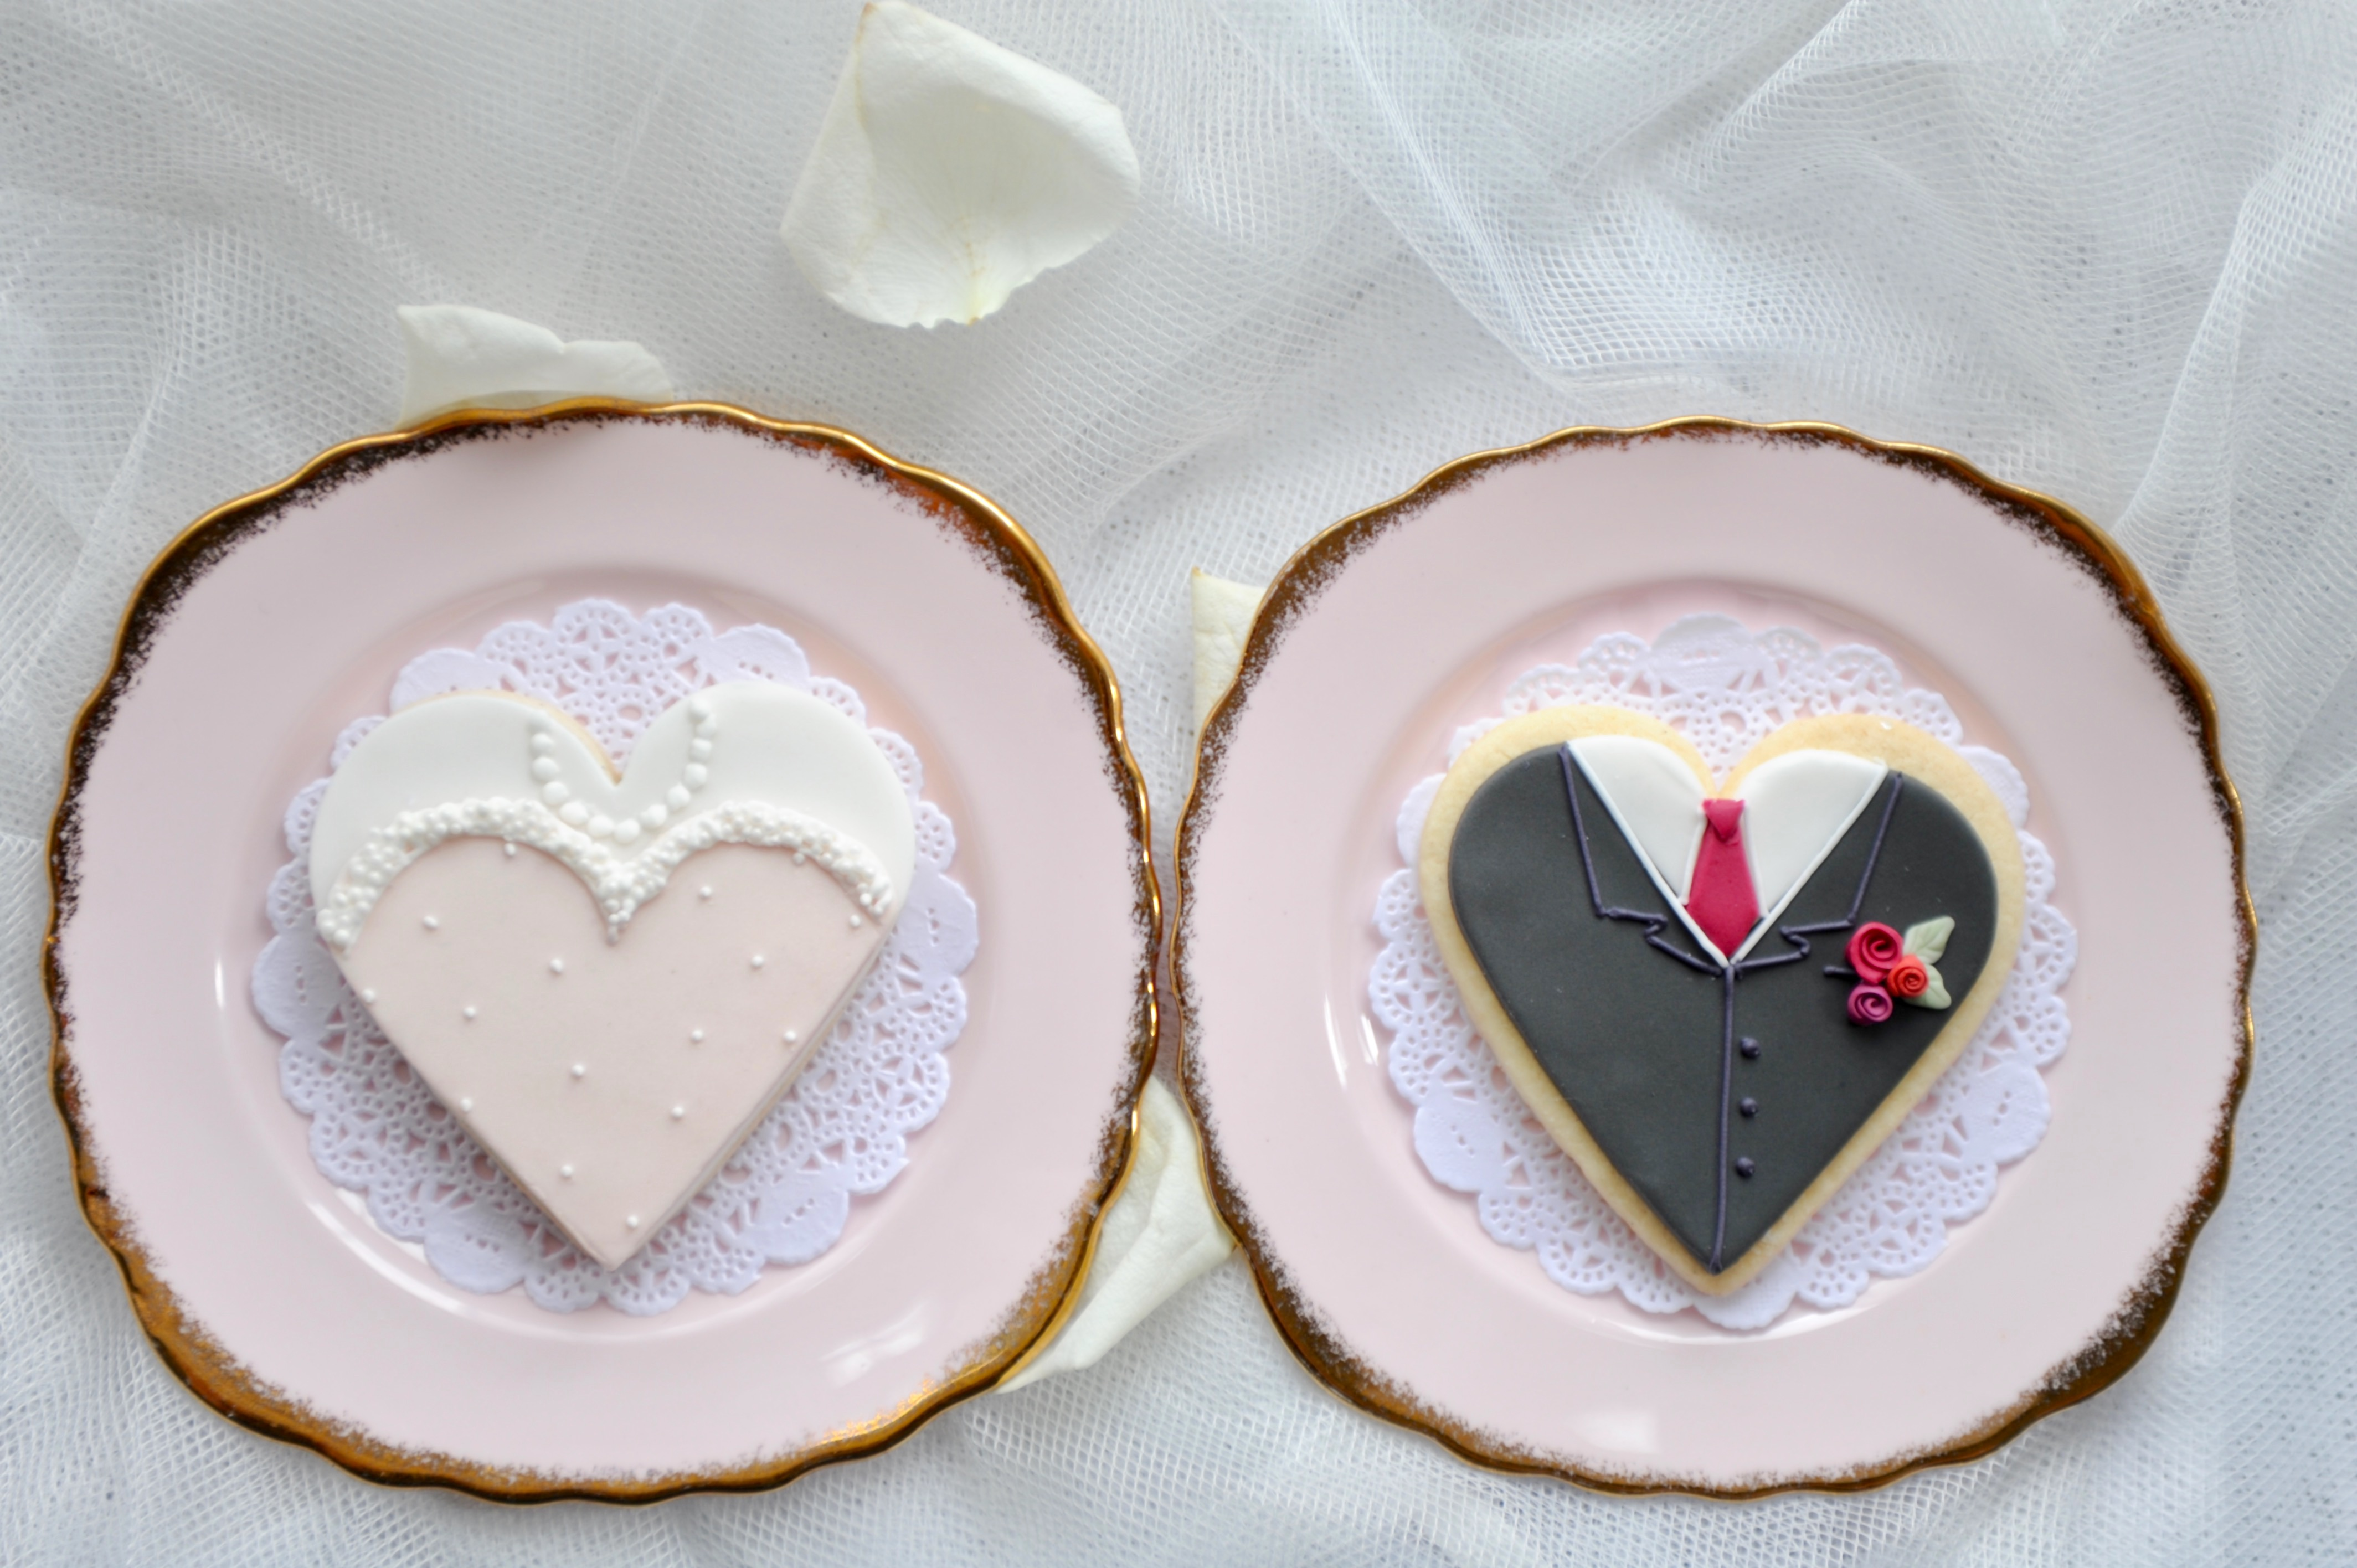 Bride & groom biscuits